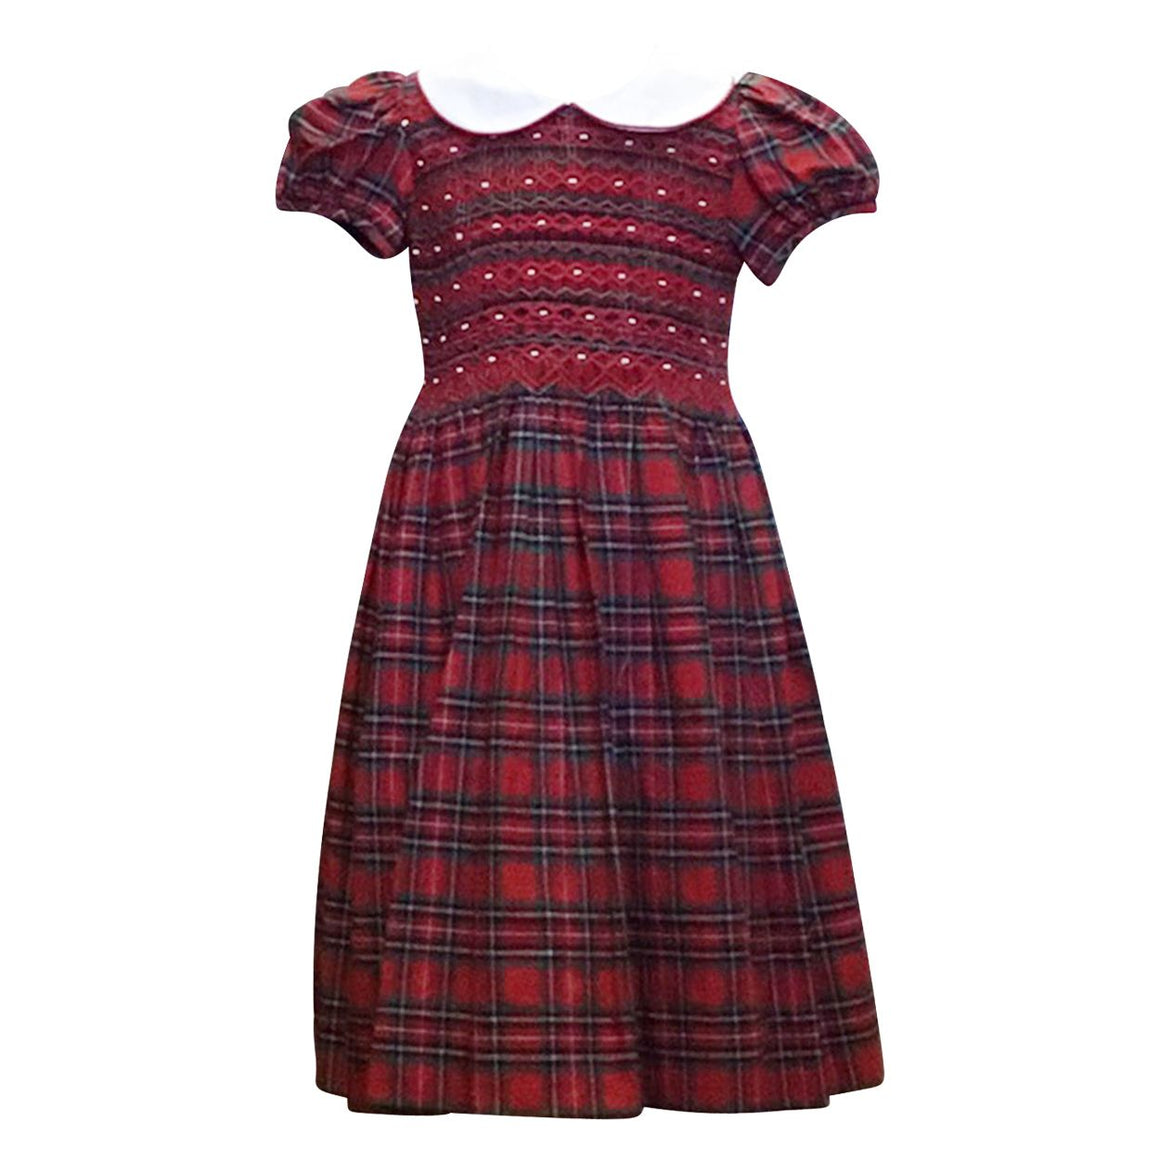 Smocked Holiday Plaid Dress